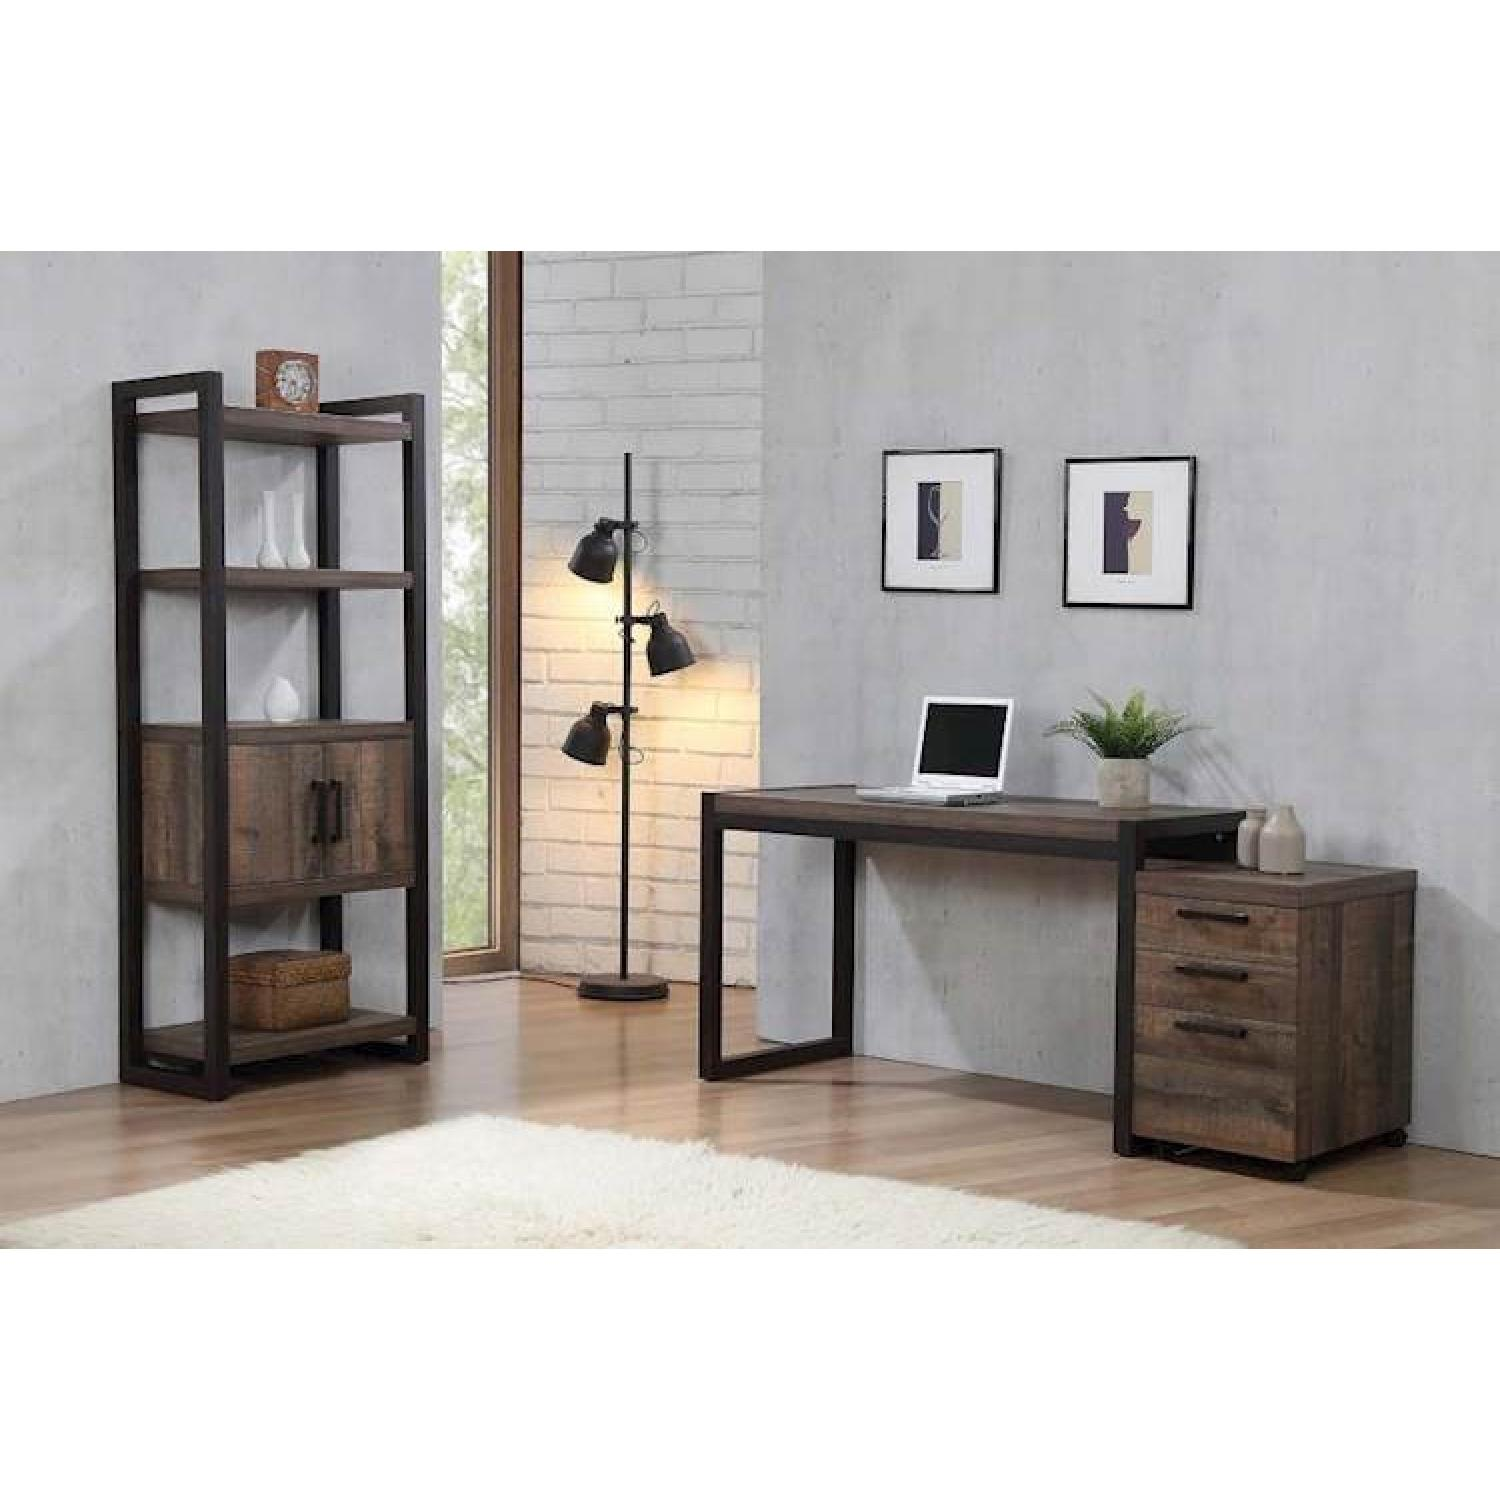 Natural Rustic Coffee Bookcase w/ Cabinet - image-3